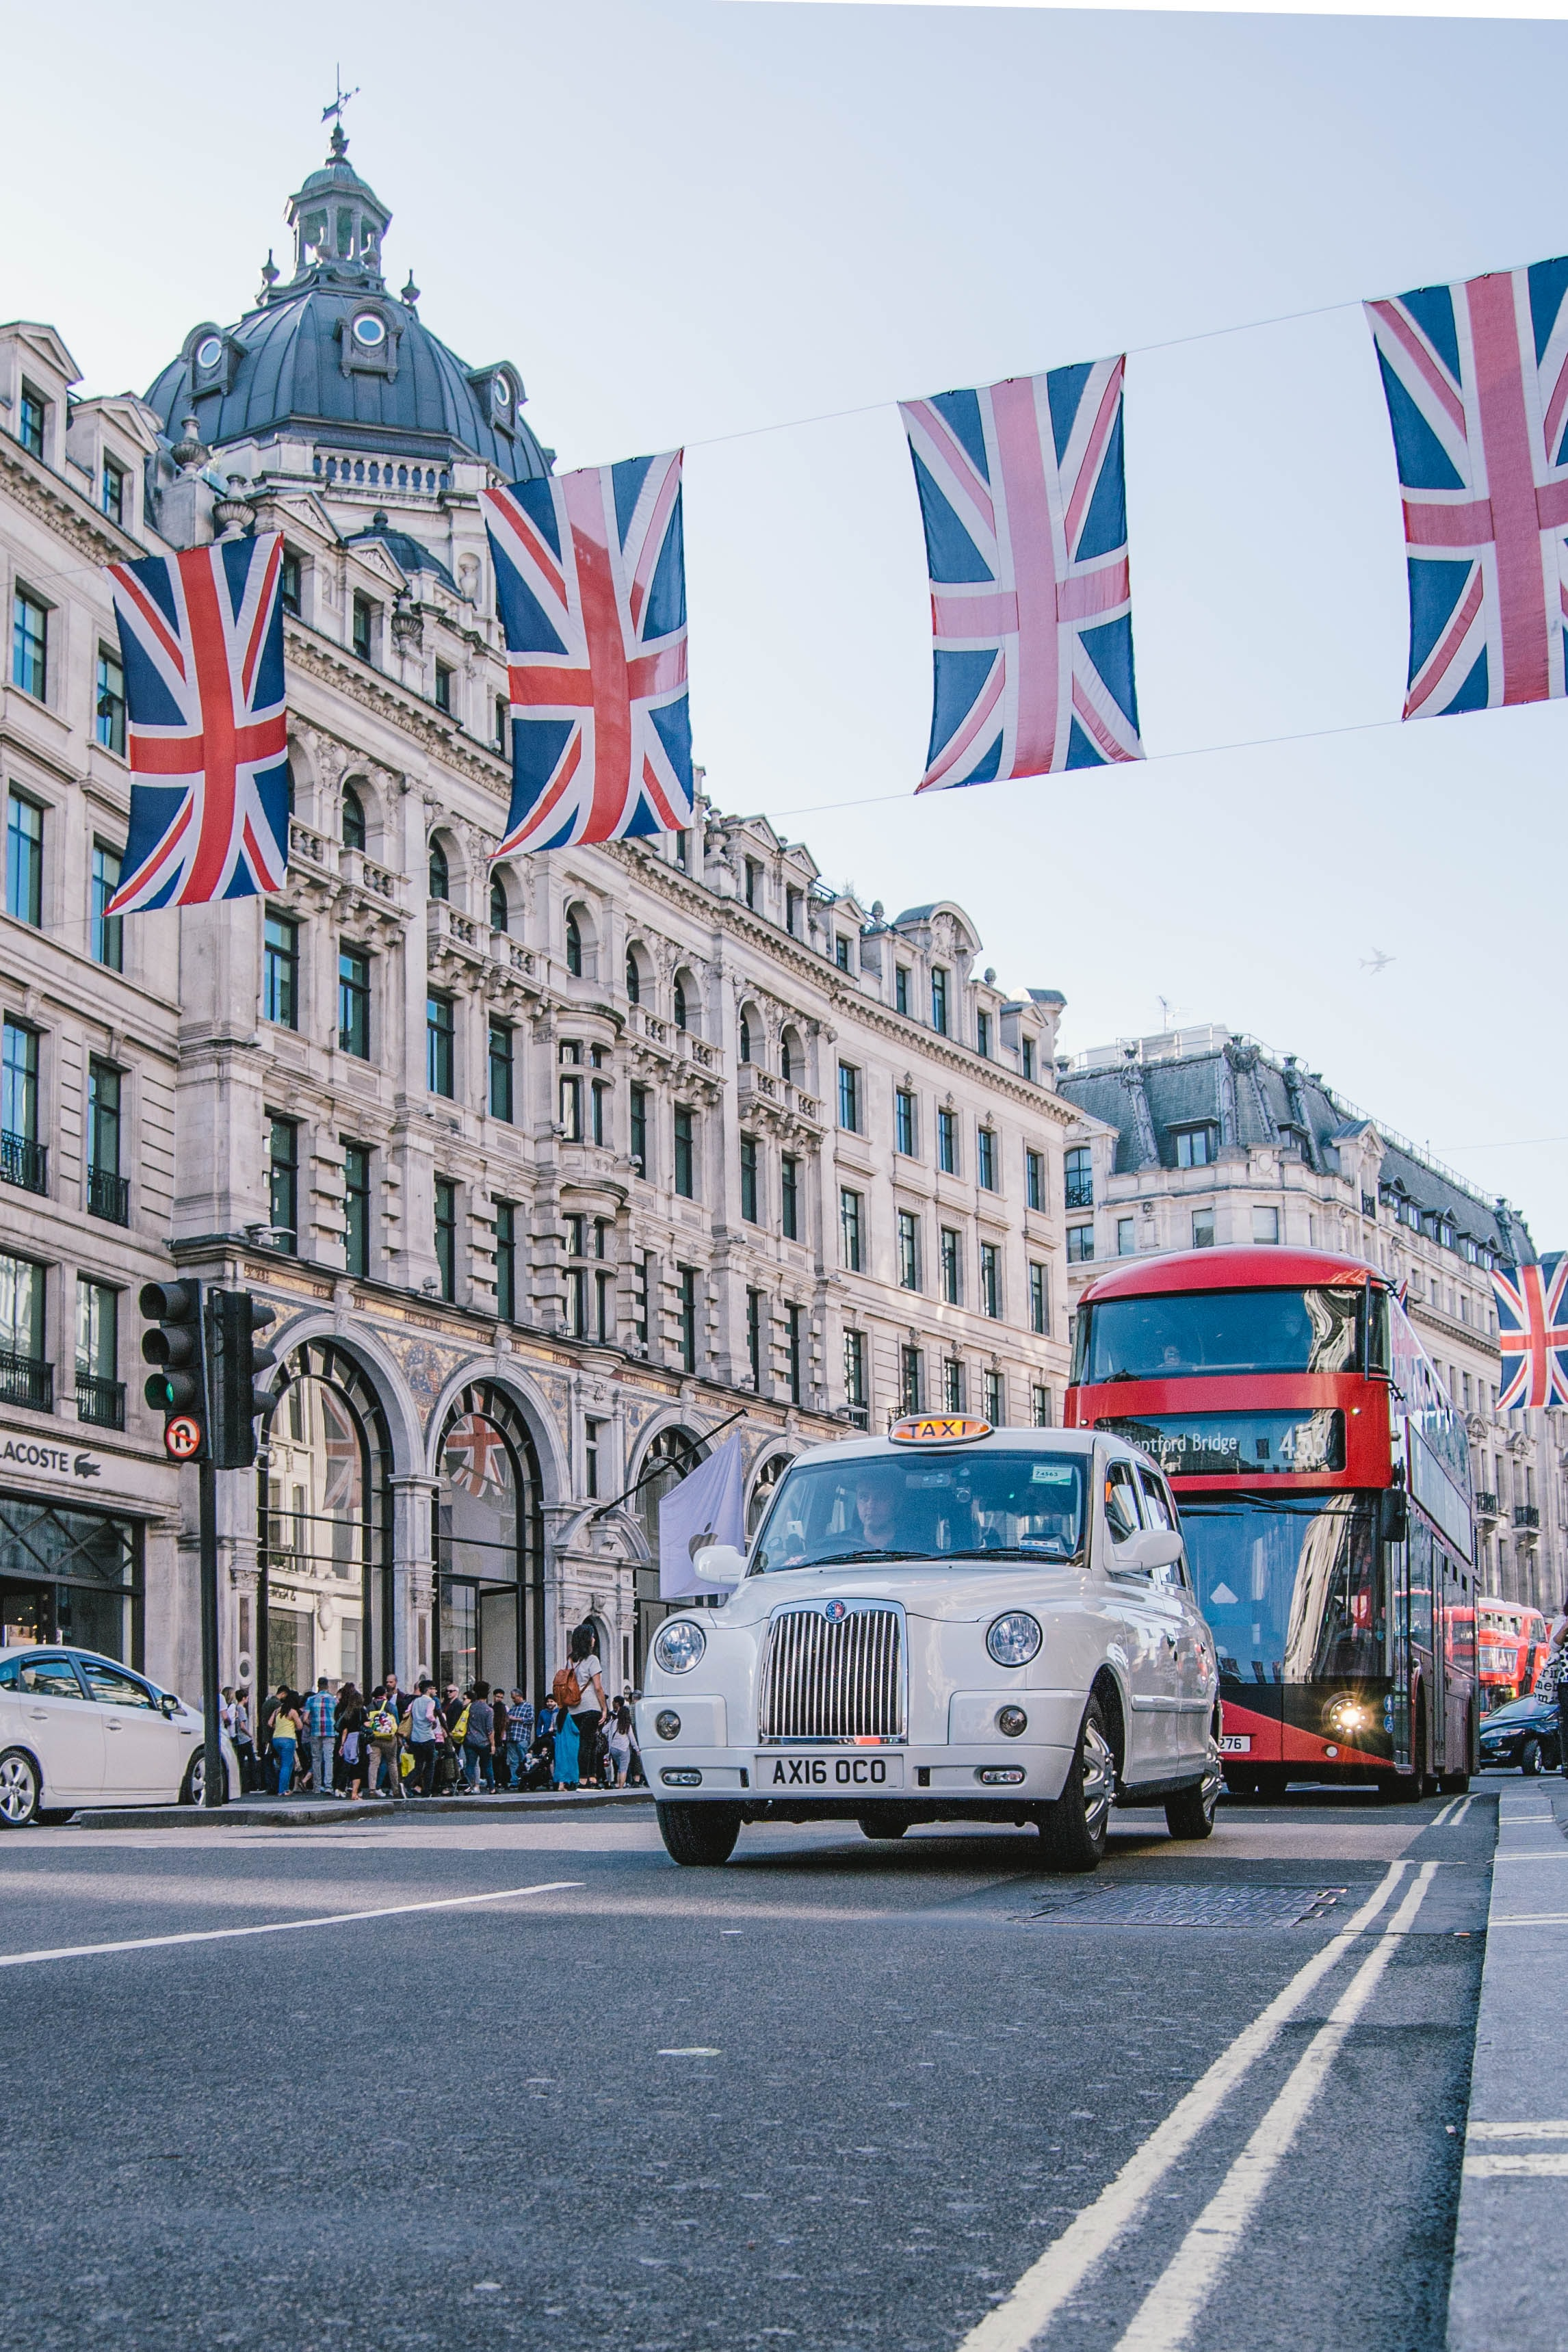 UK flags, taxi and bus